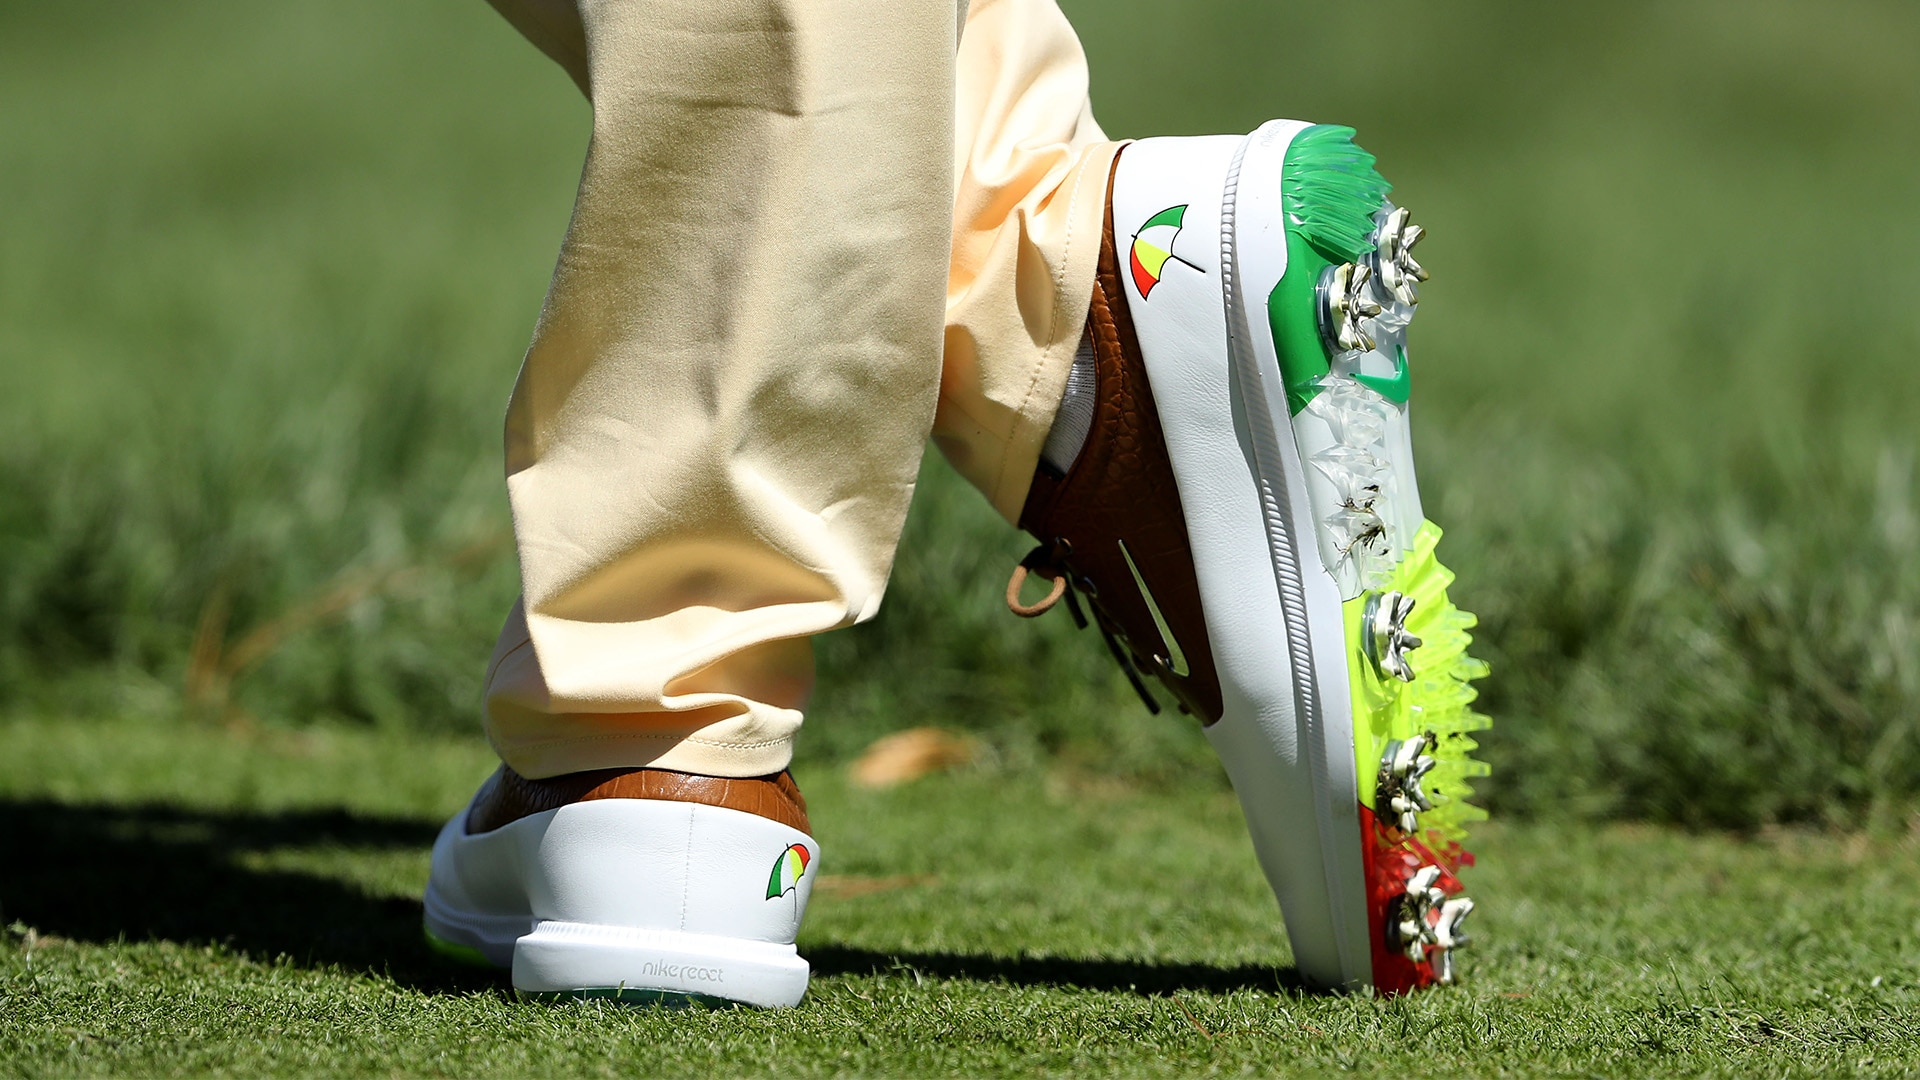 Rory McIlroy's Arnie-inspired shoes